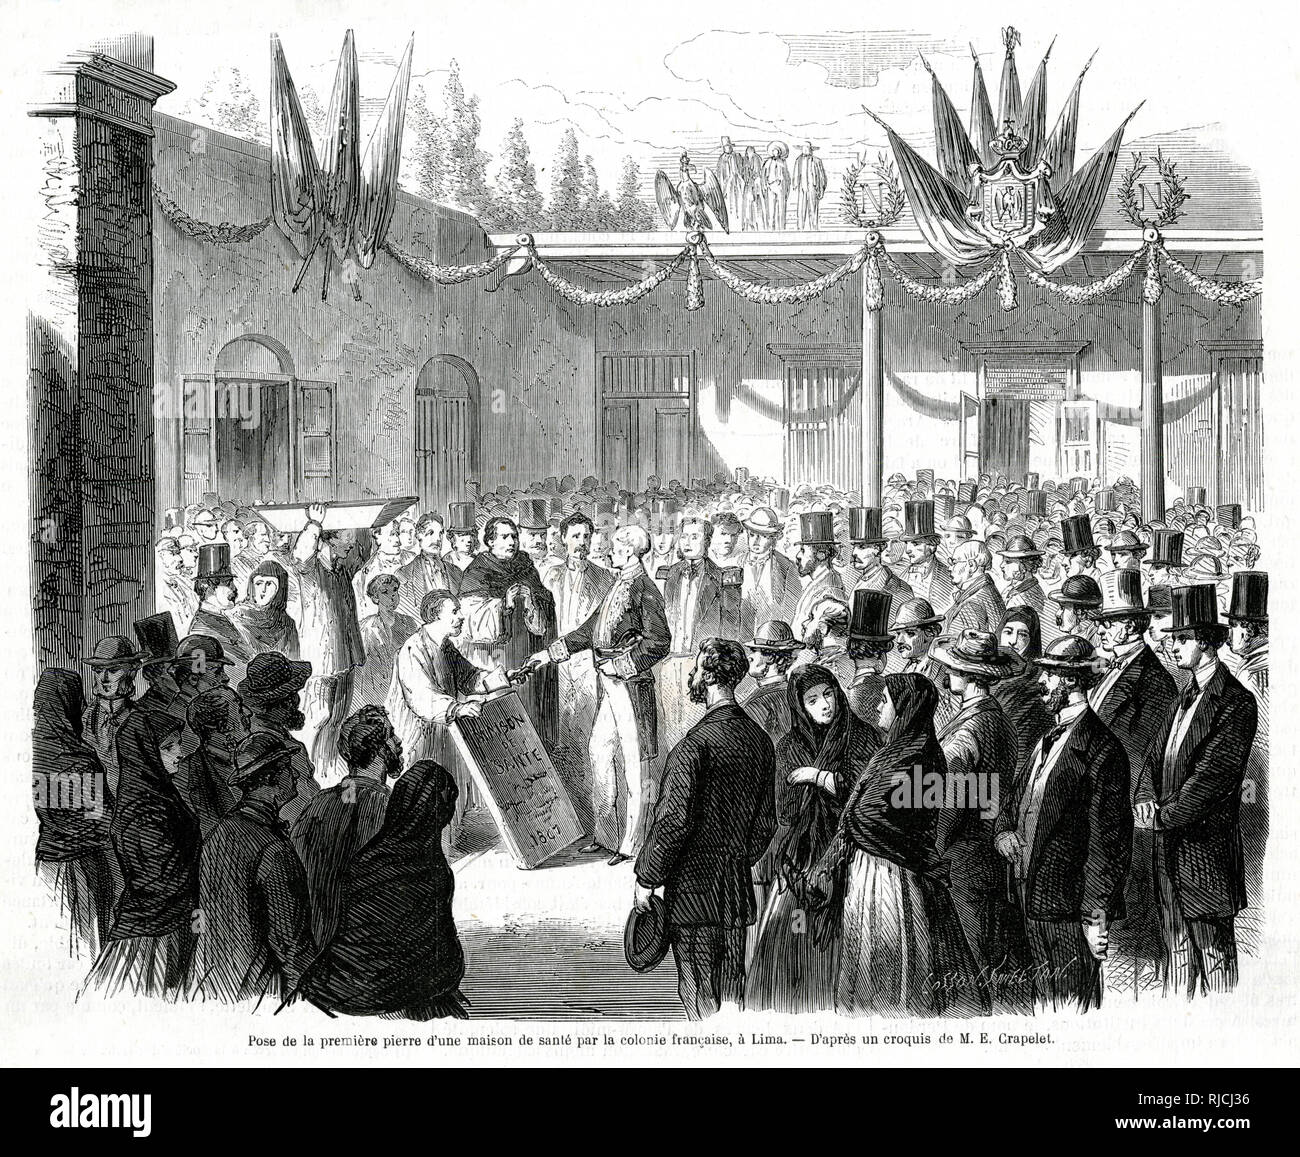 The laying of the first stone of a nursing home in the french colony at Lima. A crowd of people wait for the laying of the first stone, being inspected by a man in the middle of the room, to celebrate the opening of a new nursing home in Lima. Stock Photo